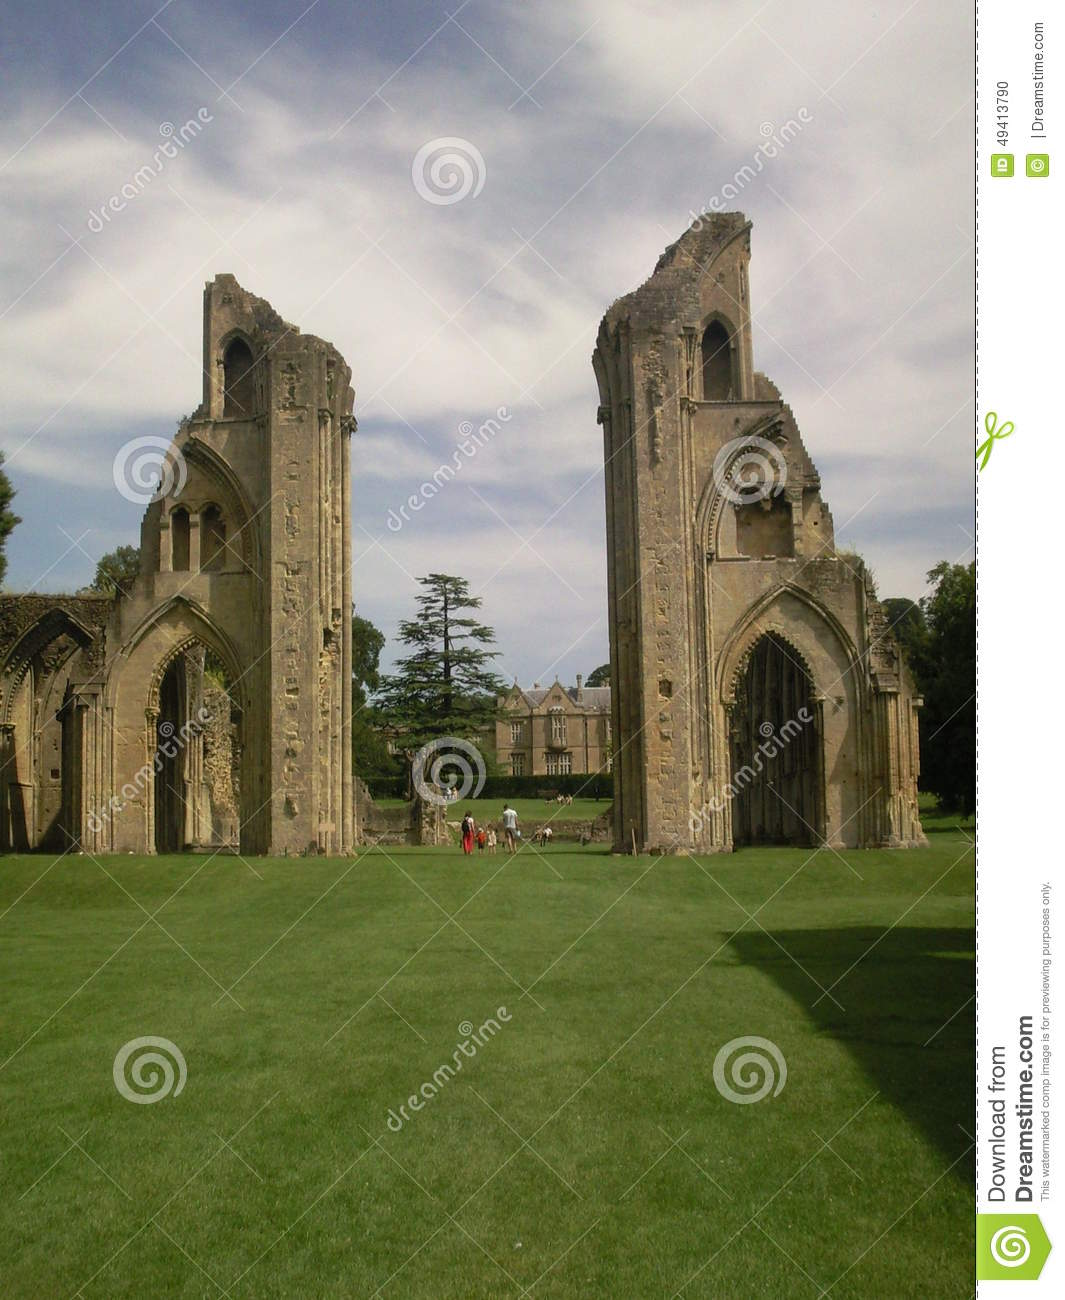 Download Glastonbury Abtei stockfoto. Bild von camelot, glastonbury - 49413790